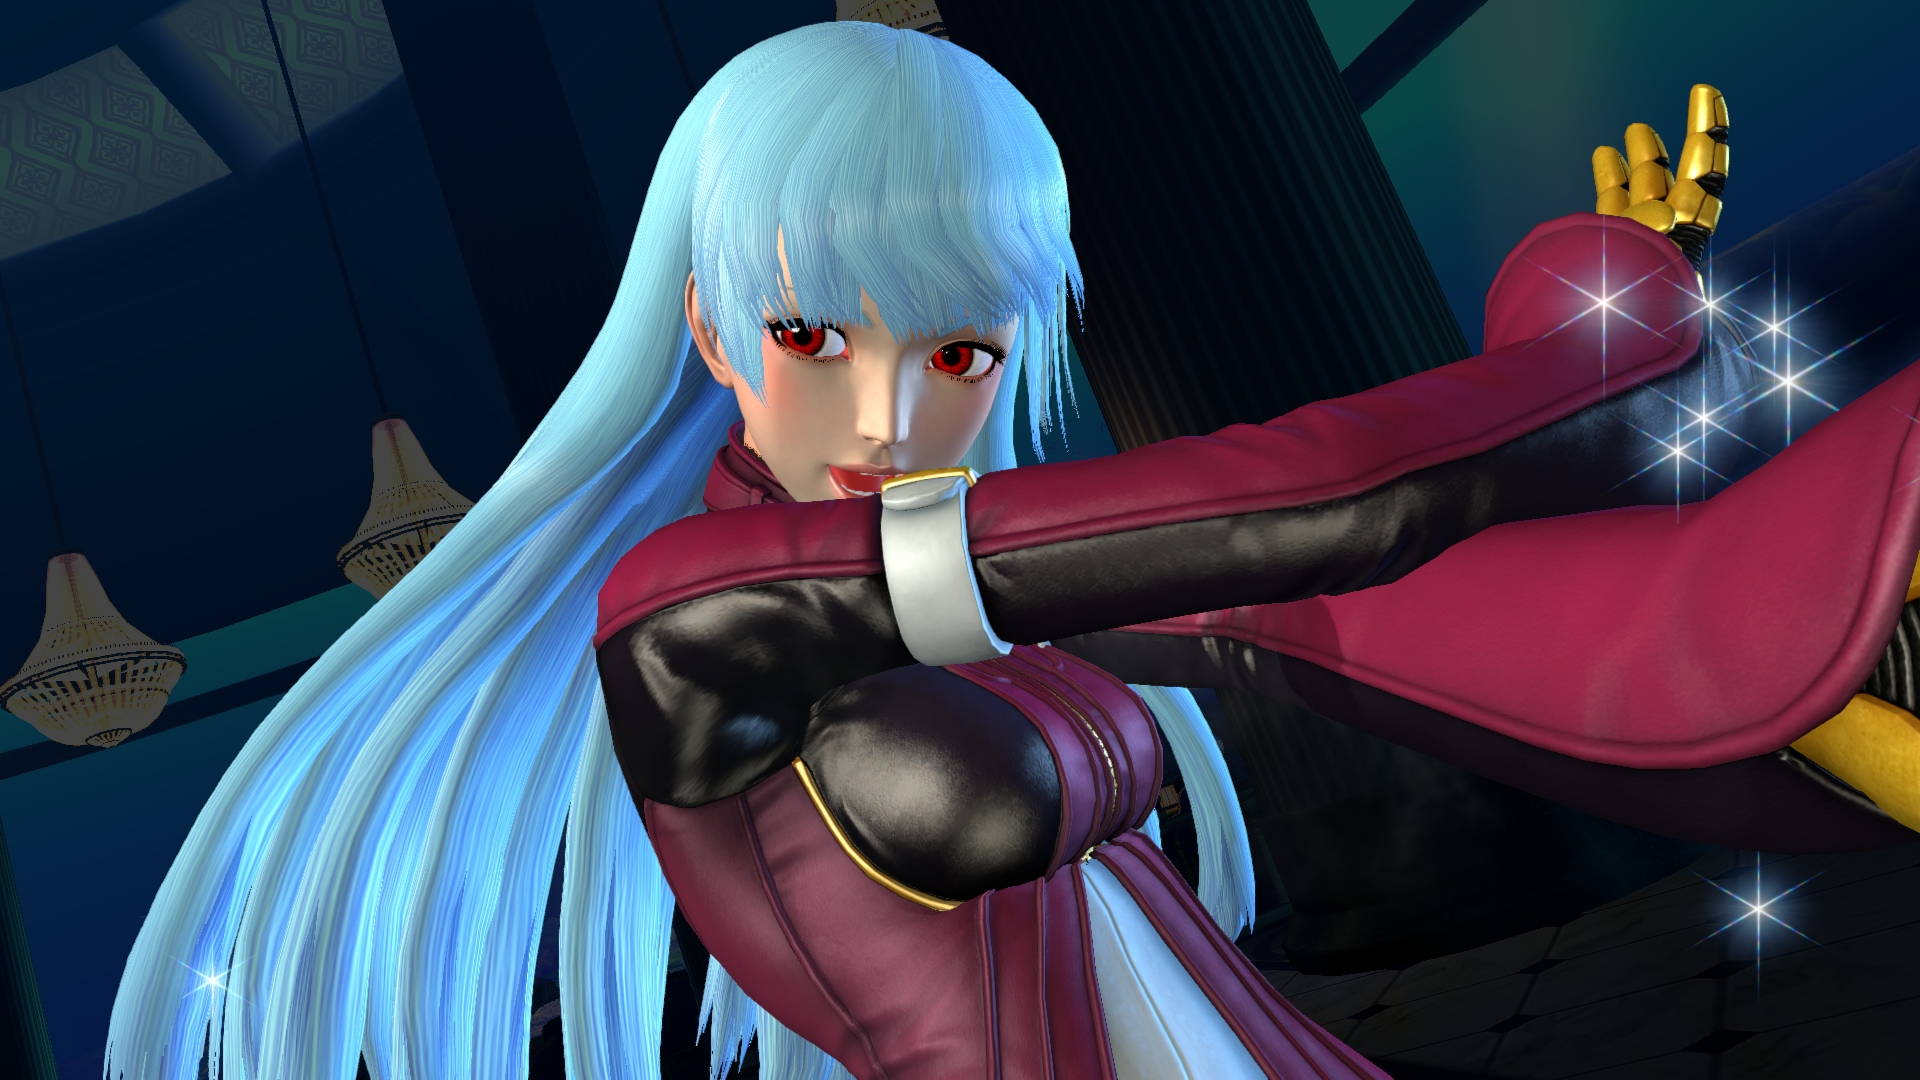 the-king-of-fighters-xiv-image-04_23437691112_o